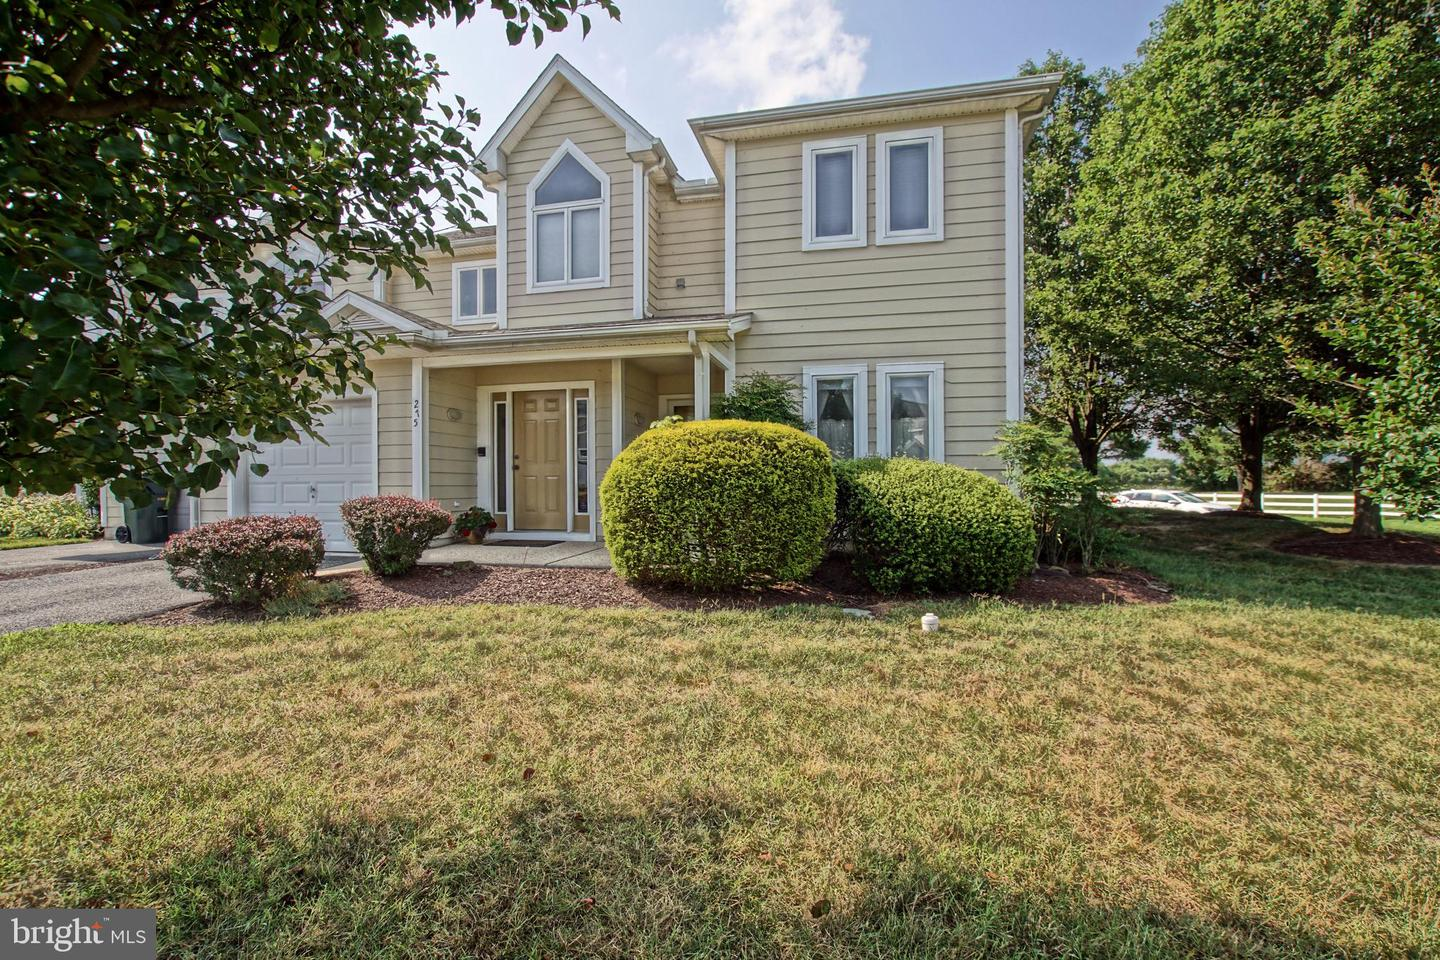 DESU144386-301896934414-2019-09-28-13-09-45 277 Lakeside Dr | Lewes, DE Real Estate For Sale | MLS# Desu144386  - Lee Ann Group